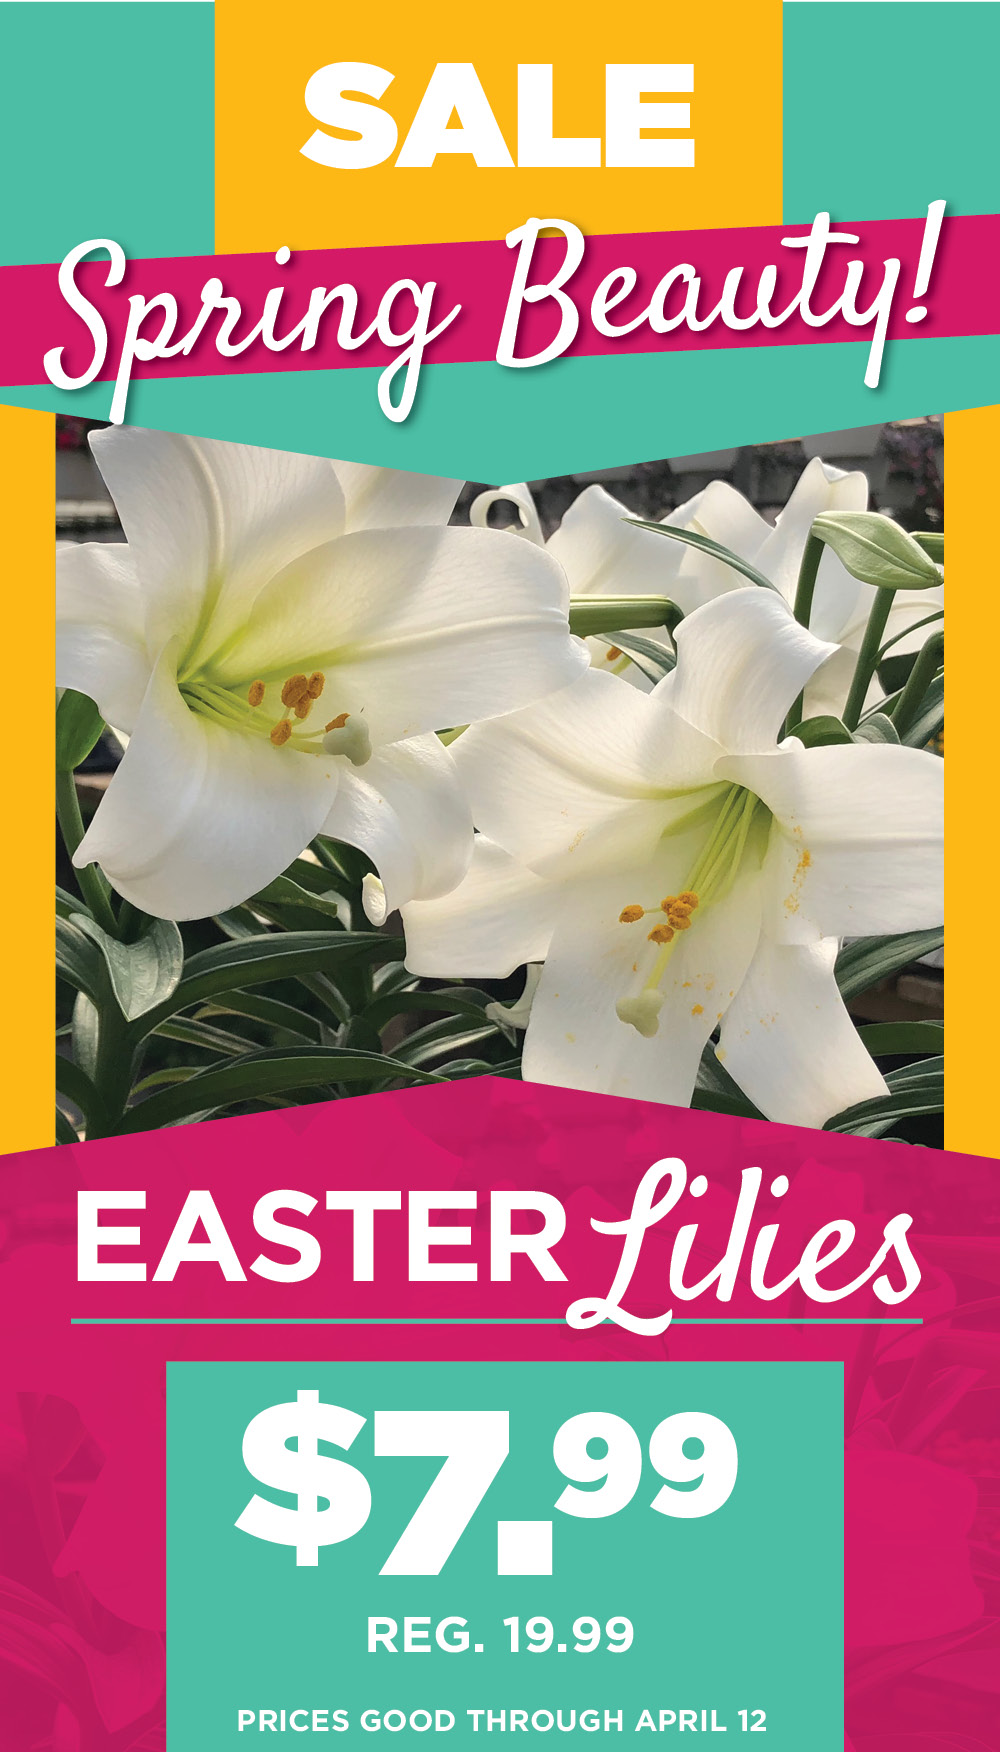 Easter Lily Sale | TLC Garden Centers